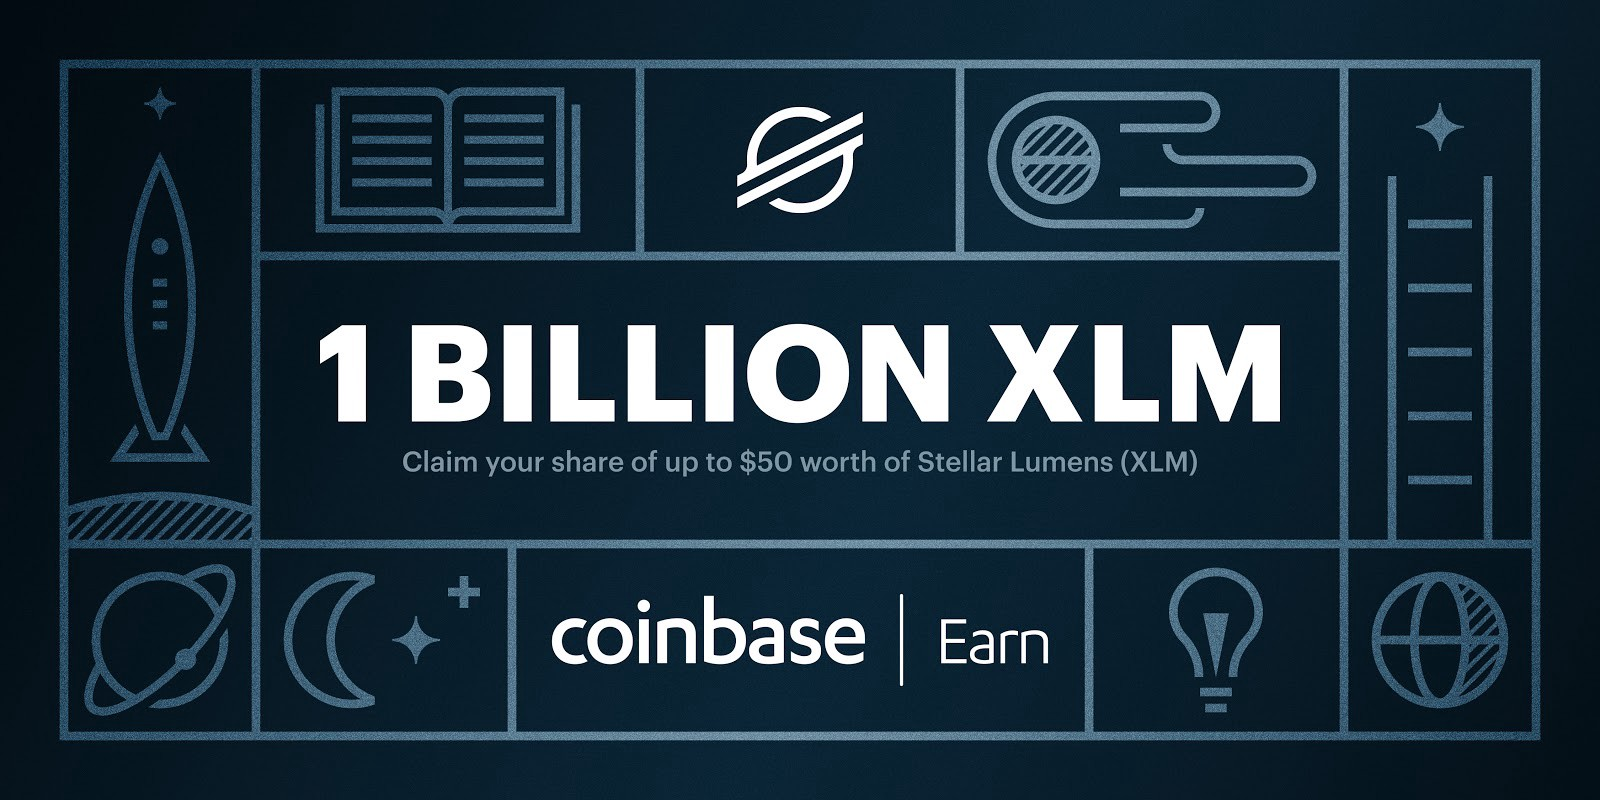 Earn $10 in Stellar Lumens (XLM) coins by watching 5 short videos (about 15 min total), and another $40 in XLM for additional referrals.